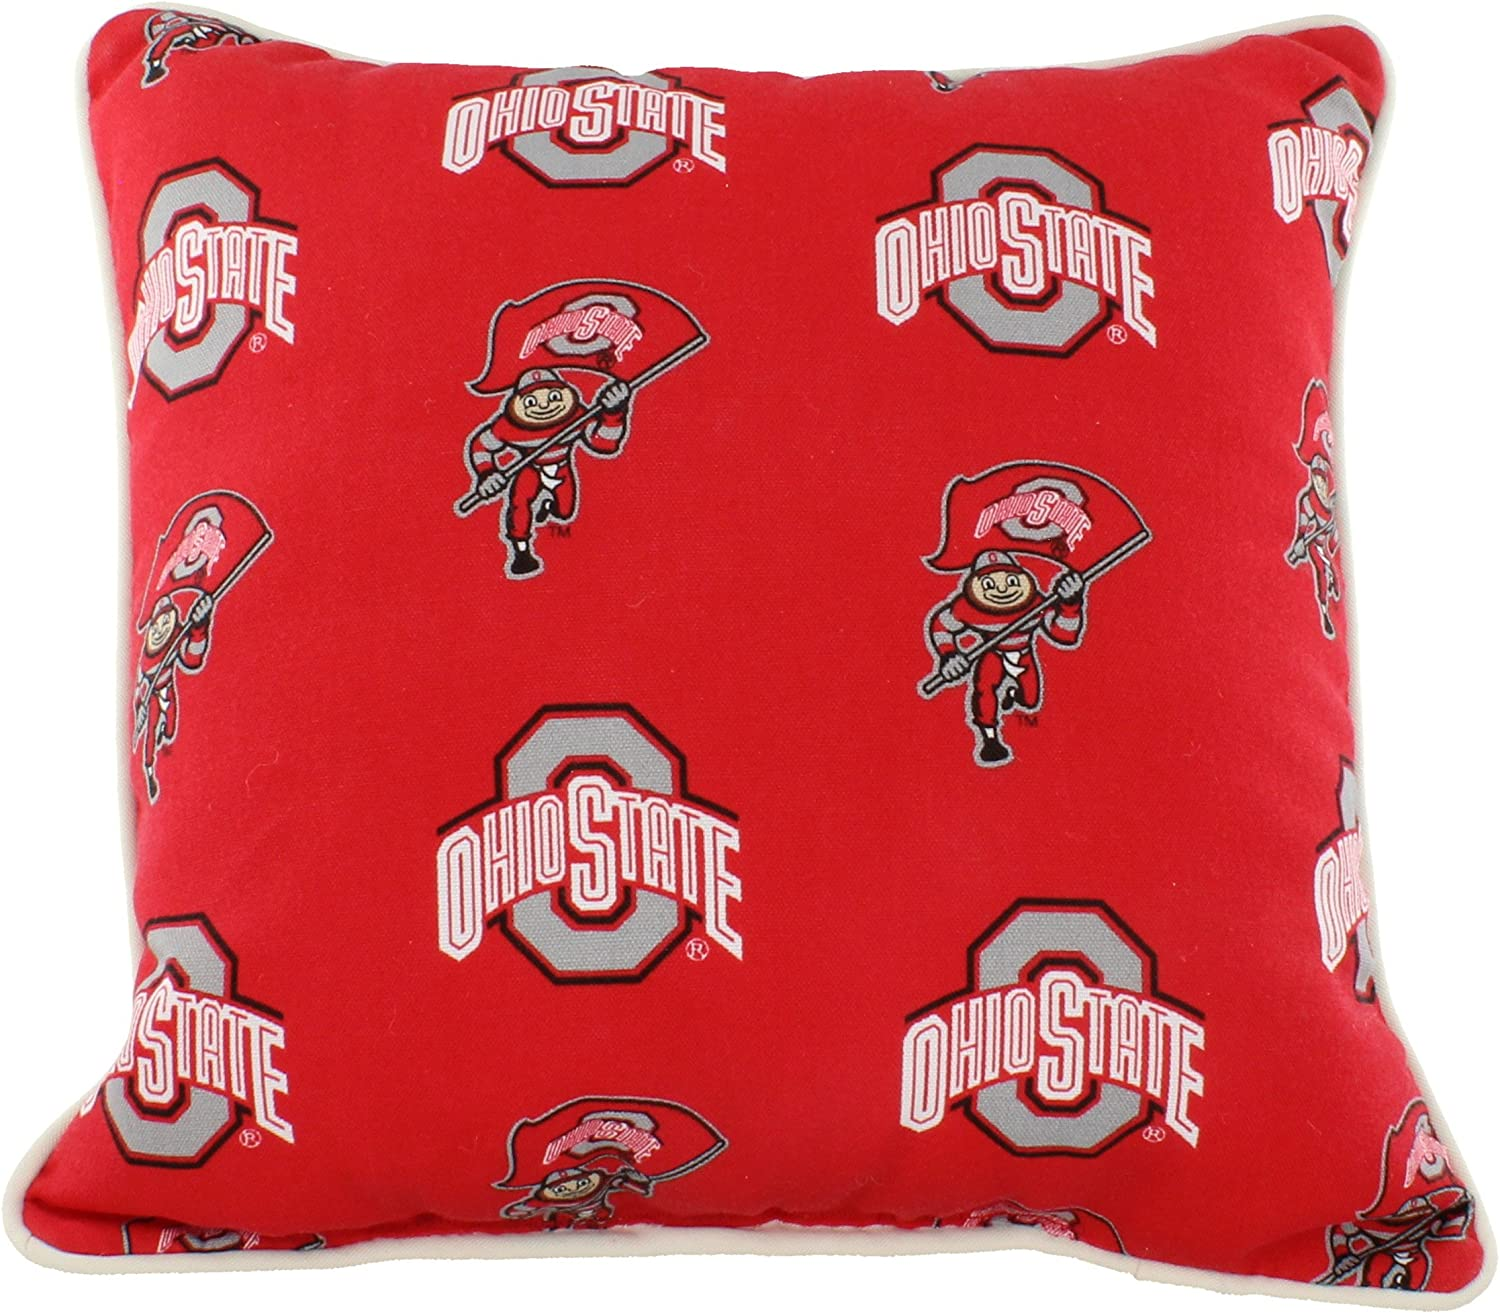 College Covers Outdoor Decorative Throw Pillow, 16 x 16 , Ohio State Buckeyes